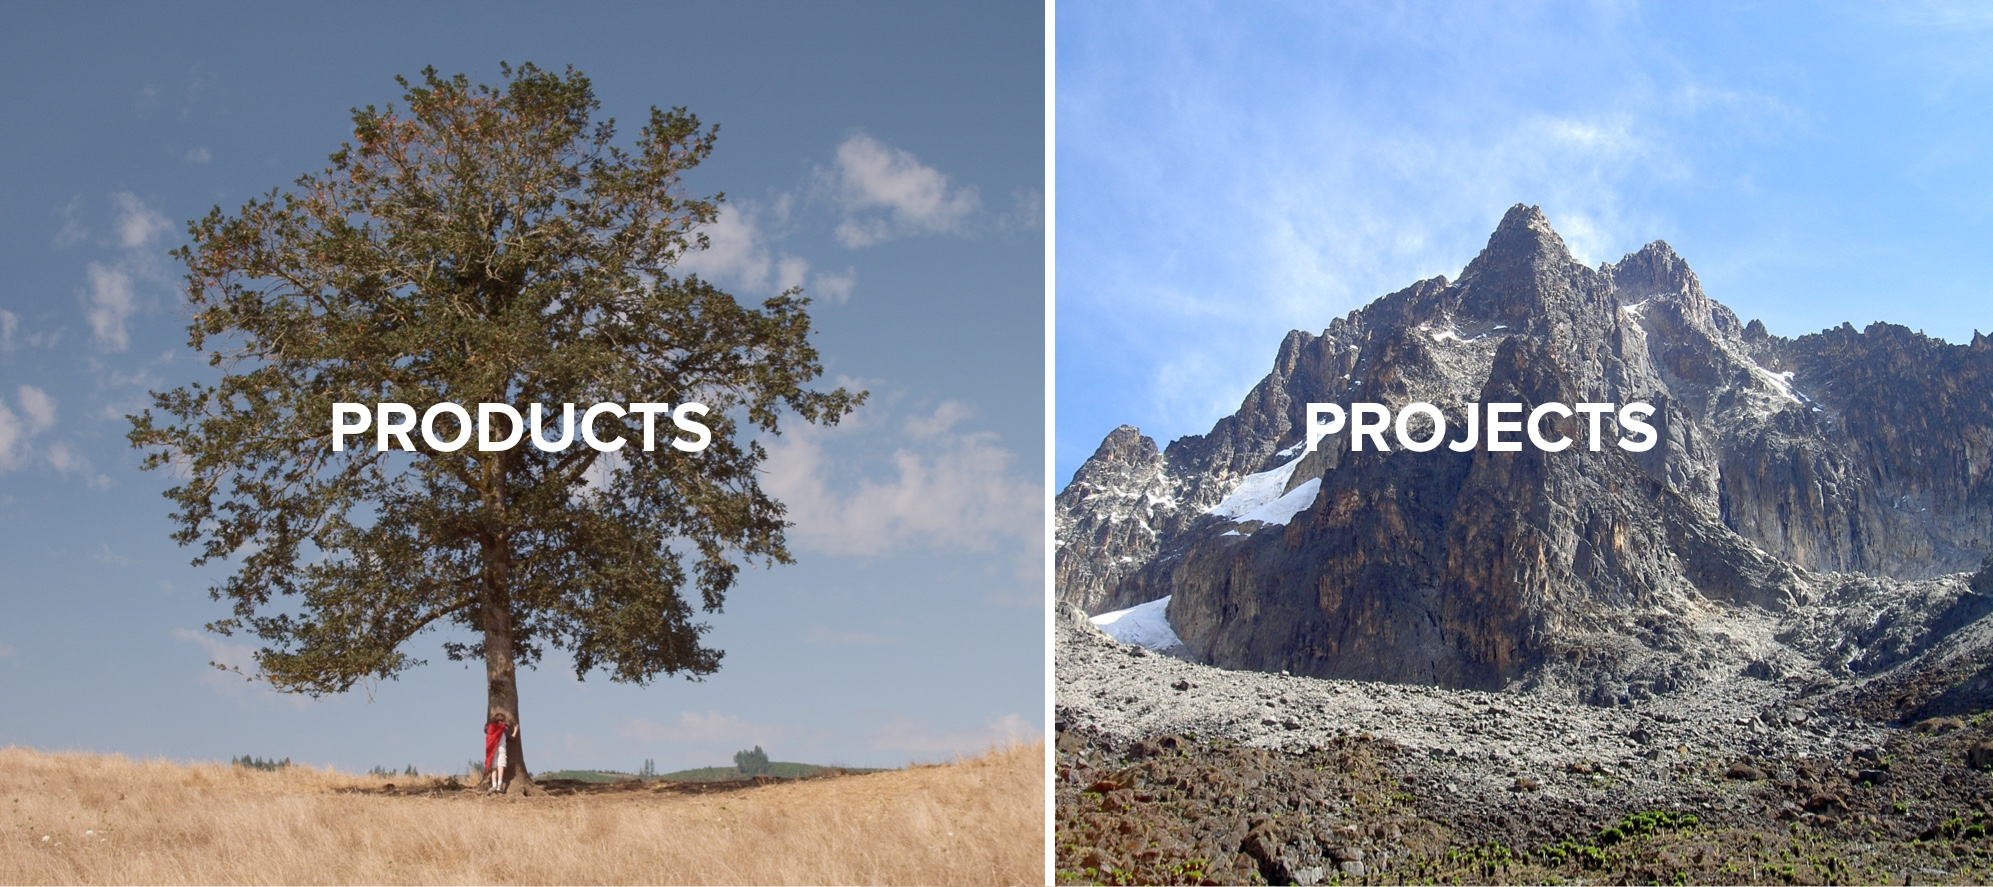 Projects vs Products: Why Software Projects Don't Create Great Products